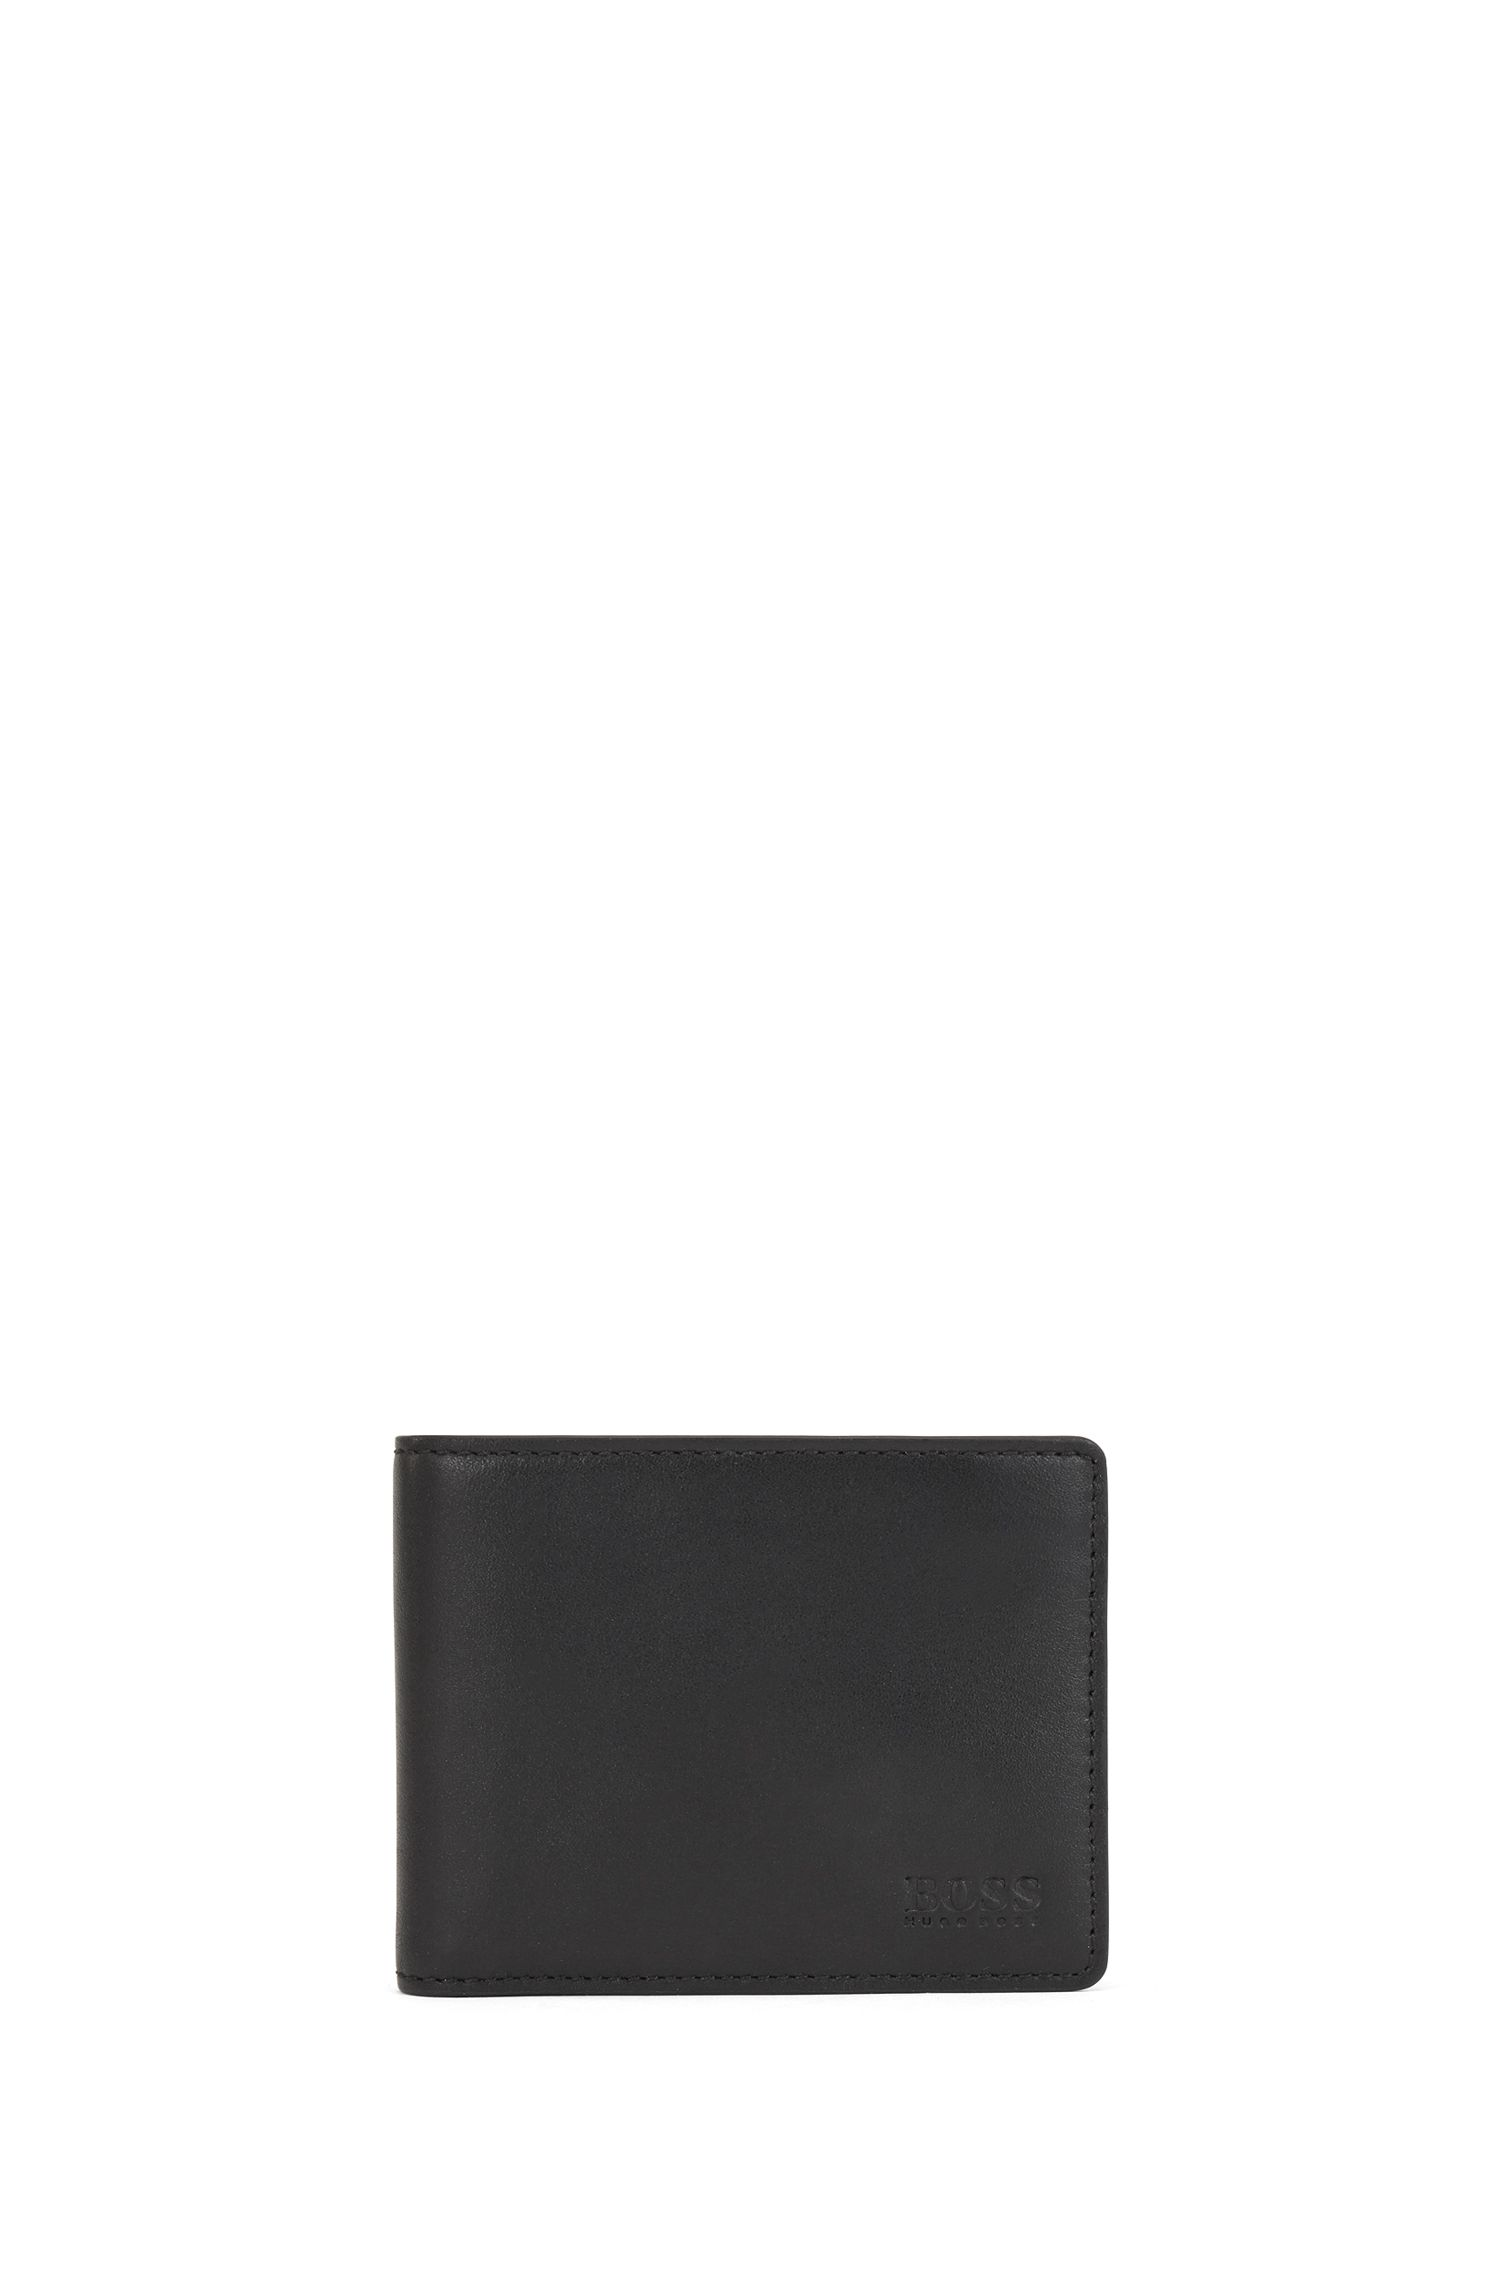 Nappa-leather billfold wallet with embossed logo, Black